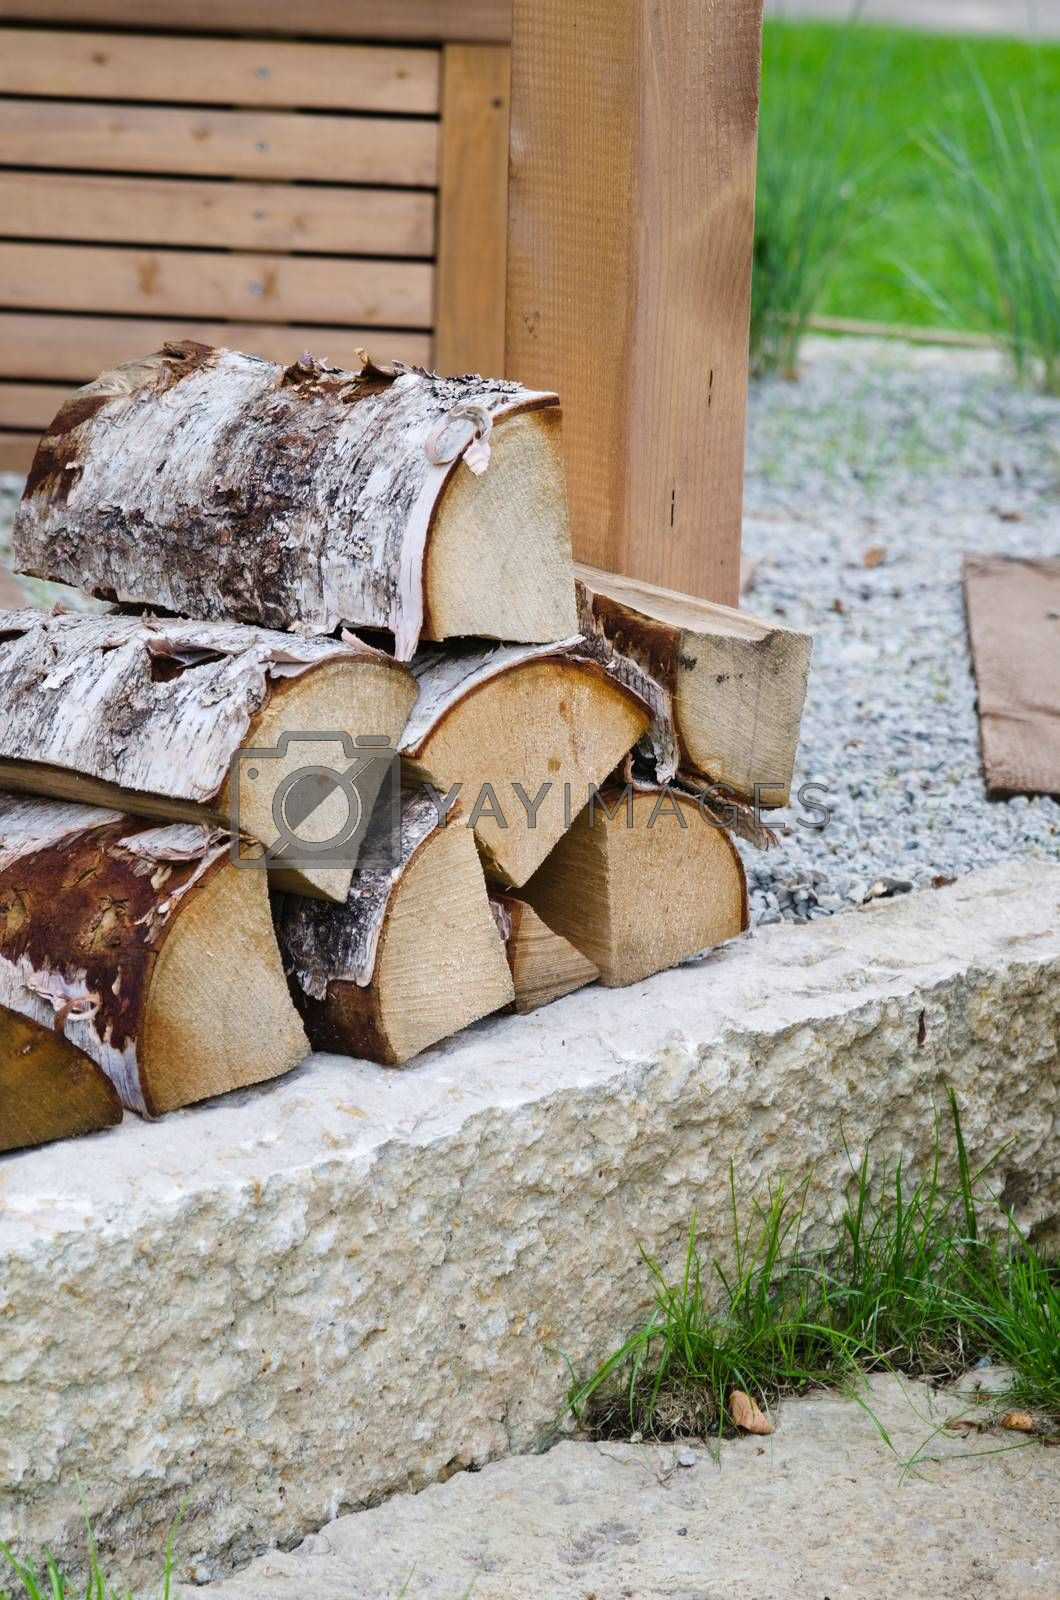 A pile of Birch wood in the garden, close-up